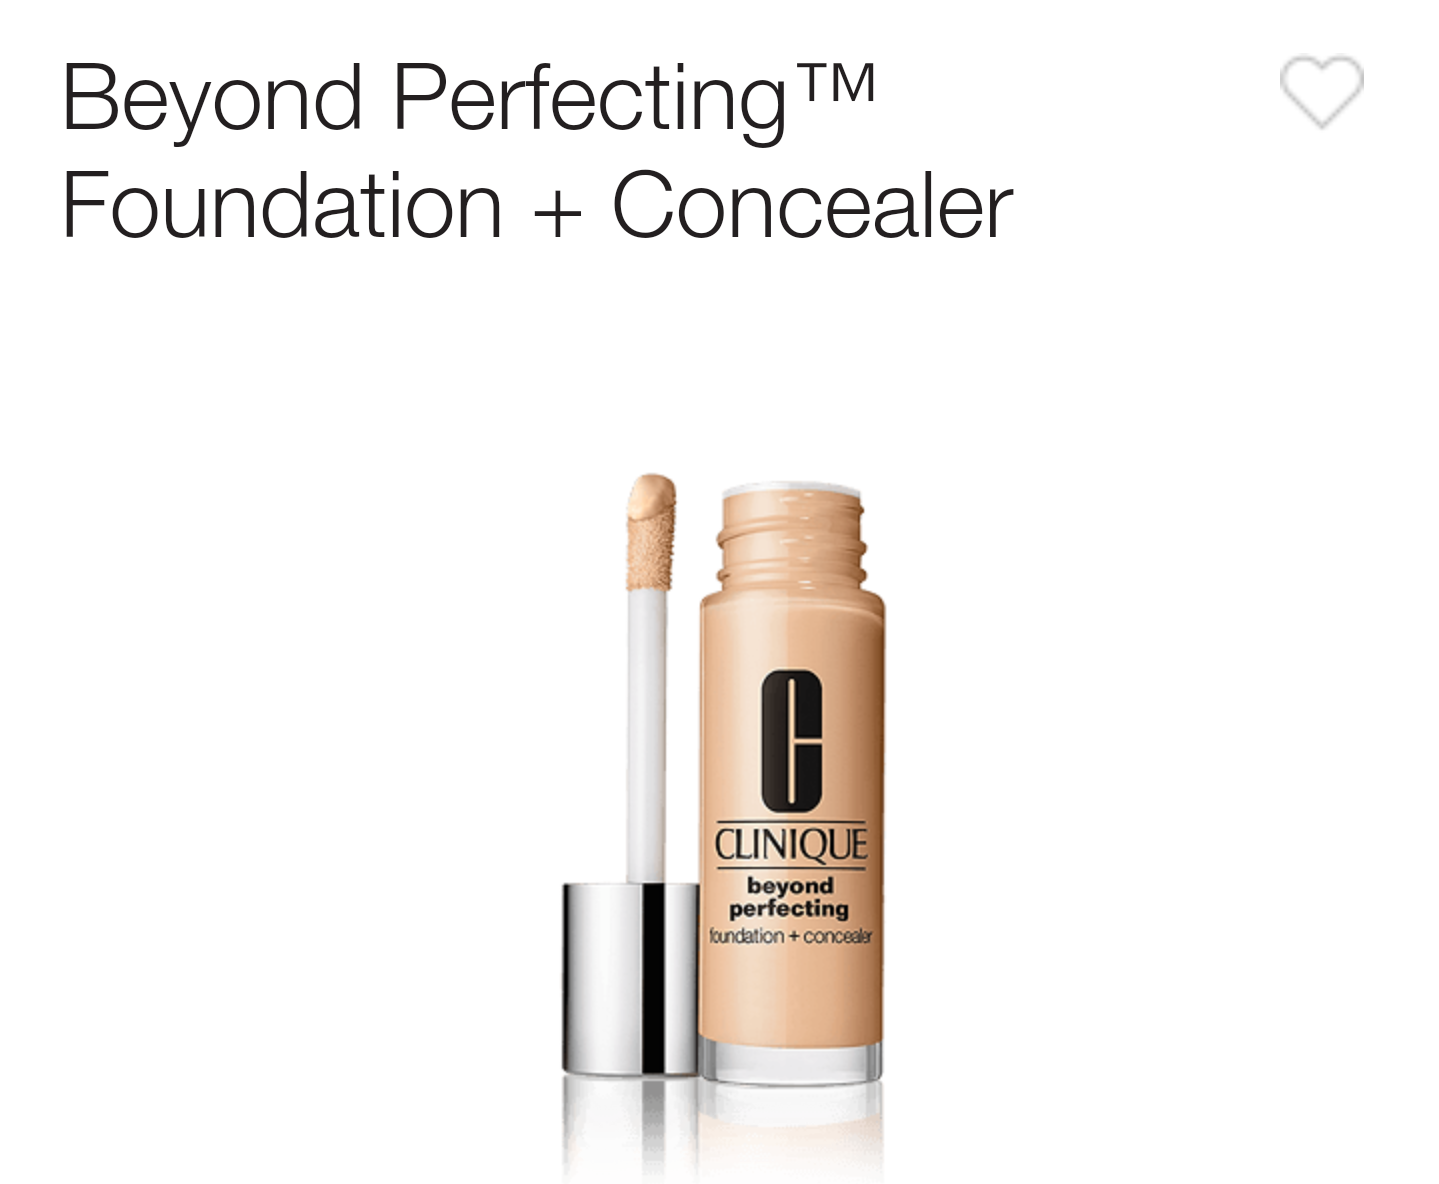 clinique beyond perfecting foundation concealer review